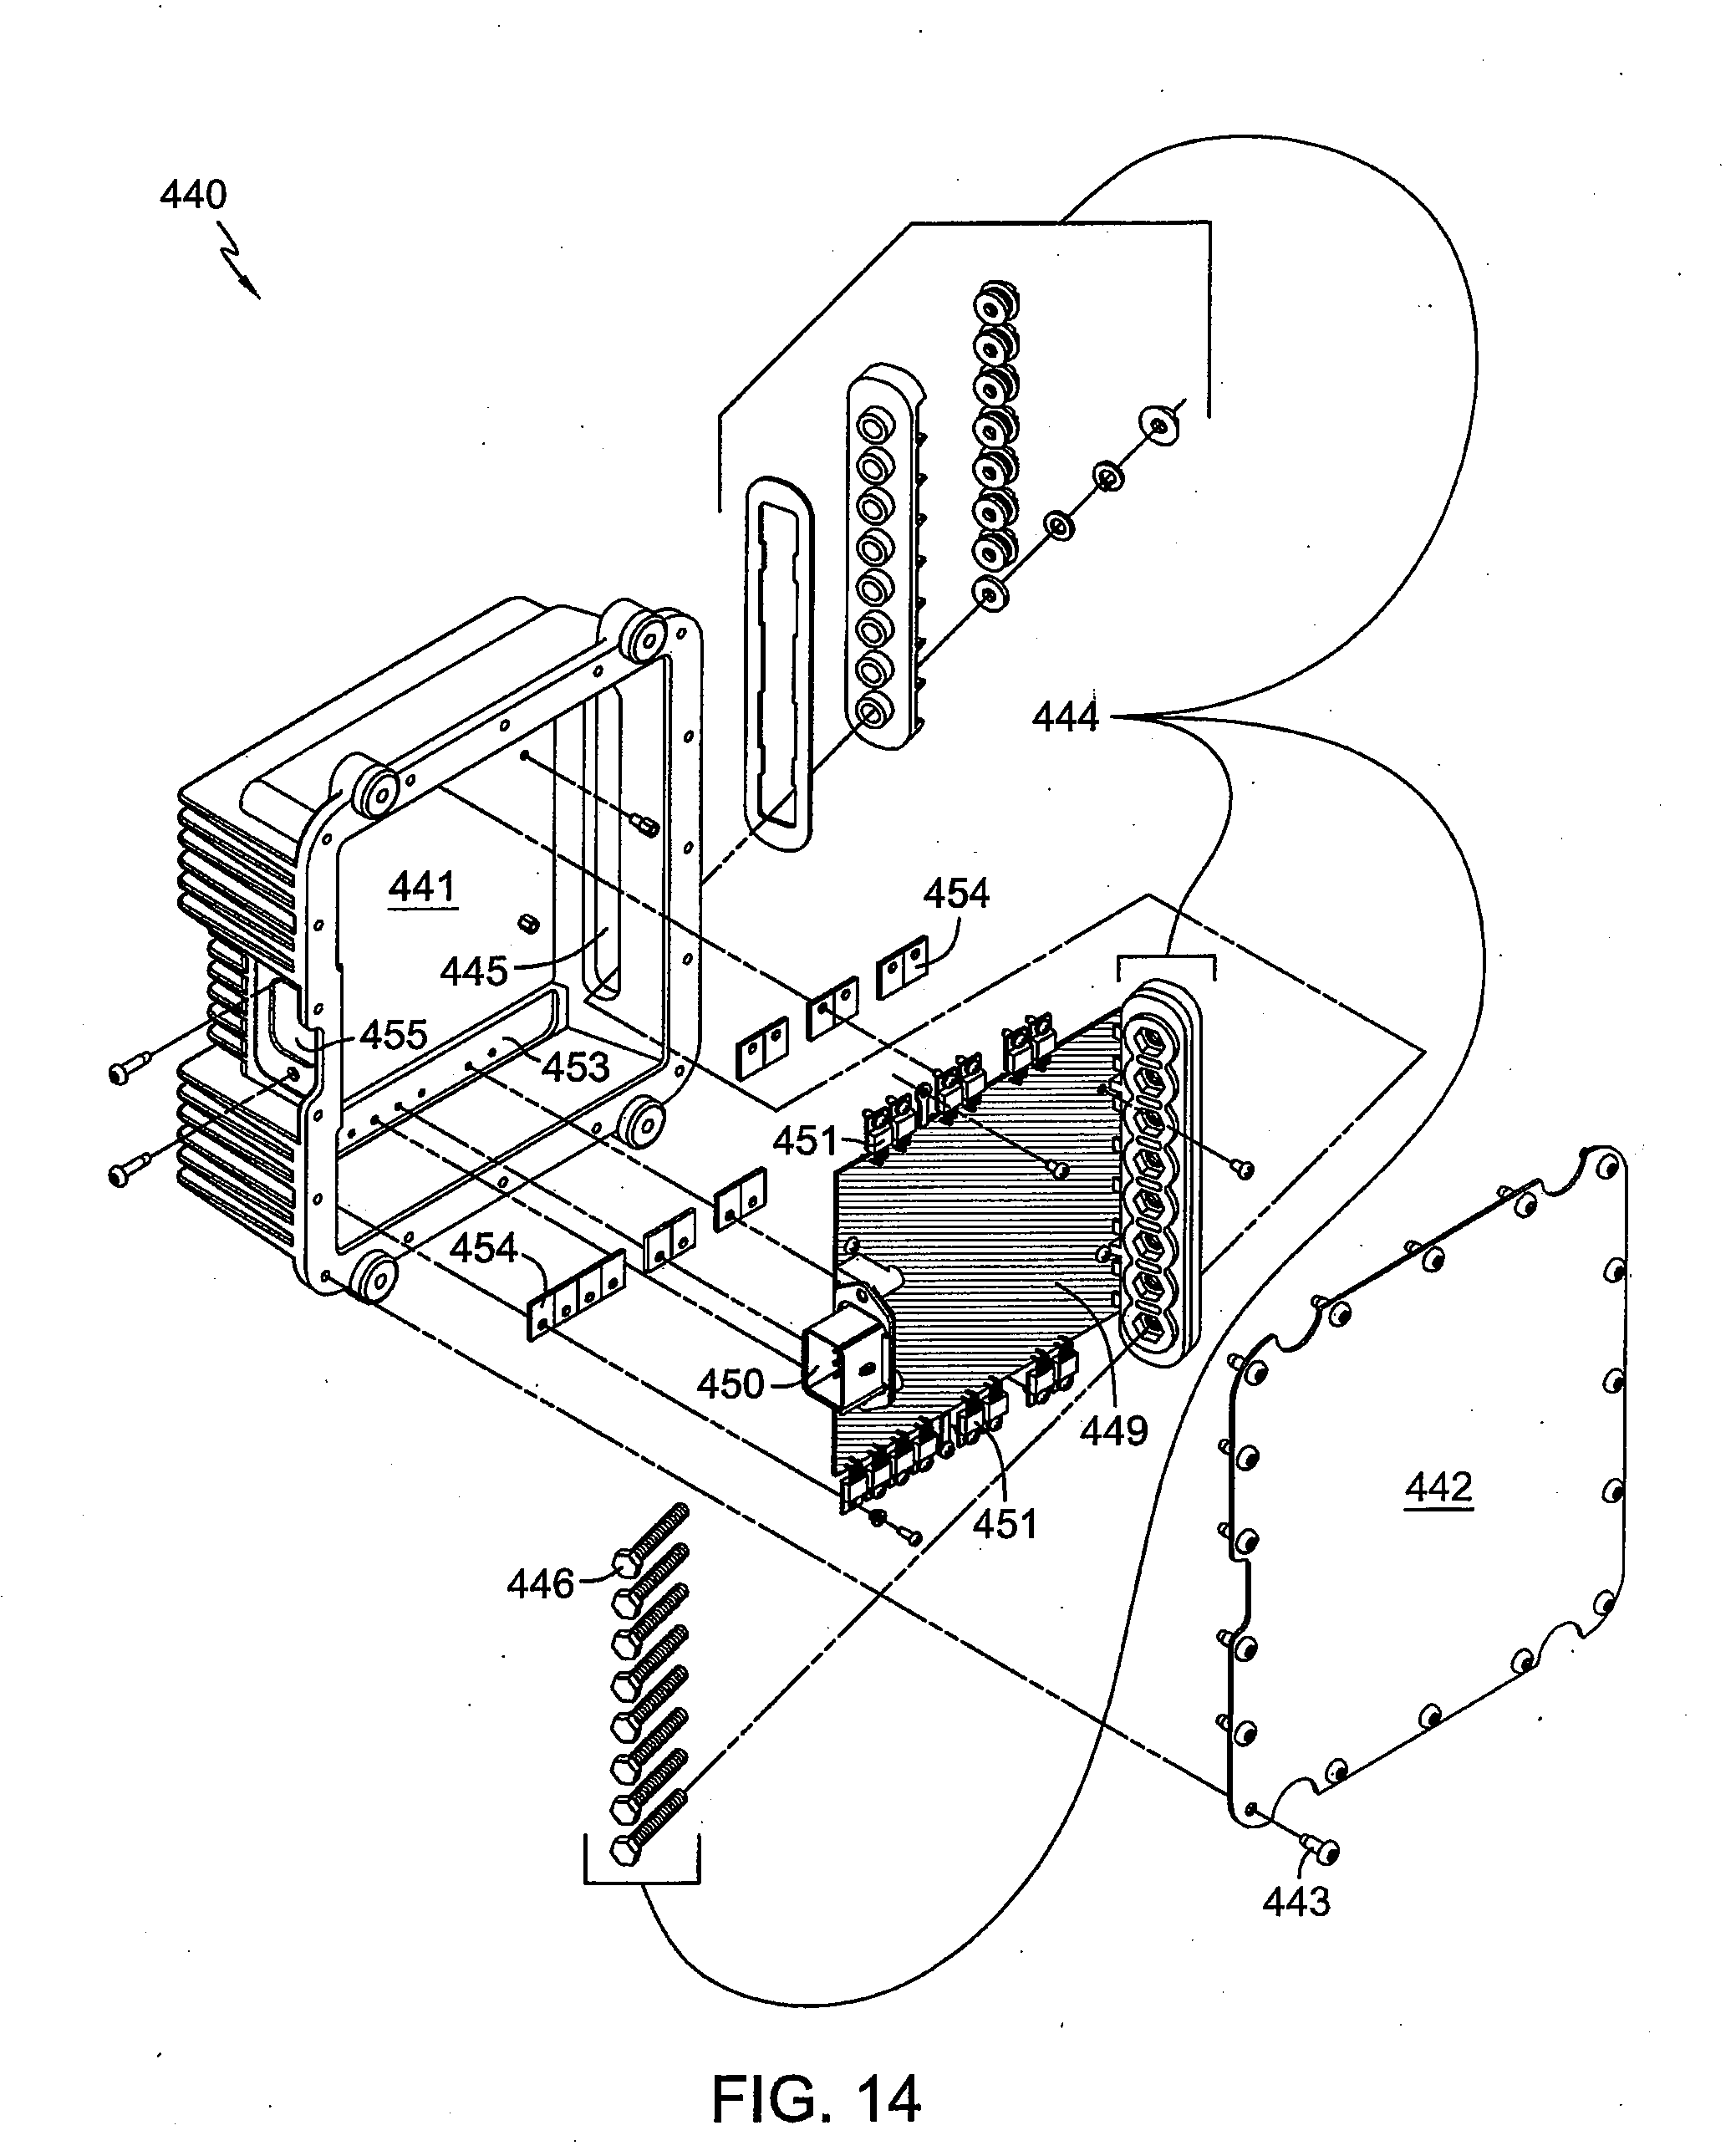 US20090201650A1 20090813 D00014 how to wire a toggle switch with 3 prongs 7 on how to wire a toggle switch with 3 prongs